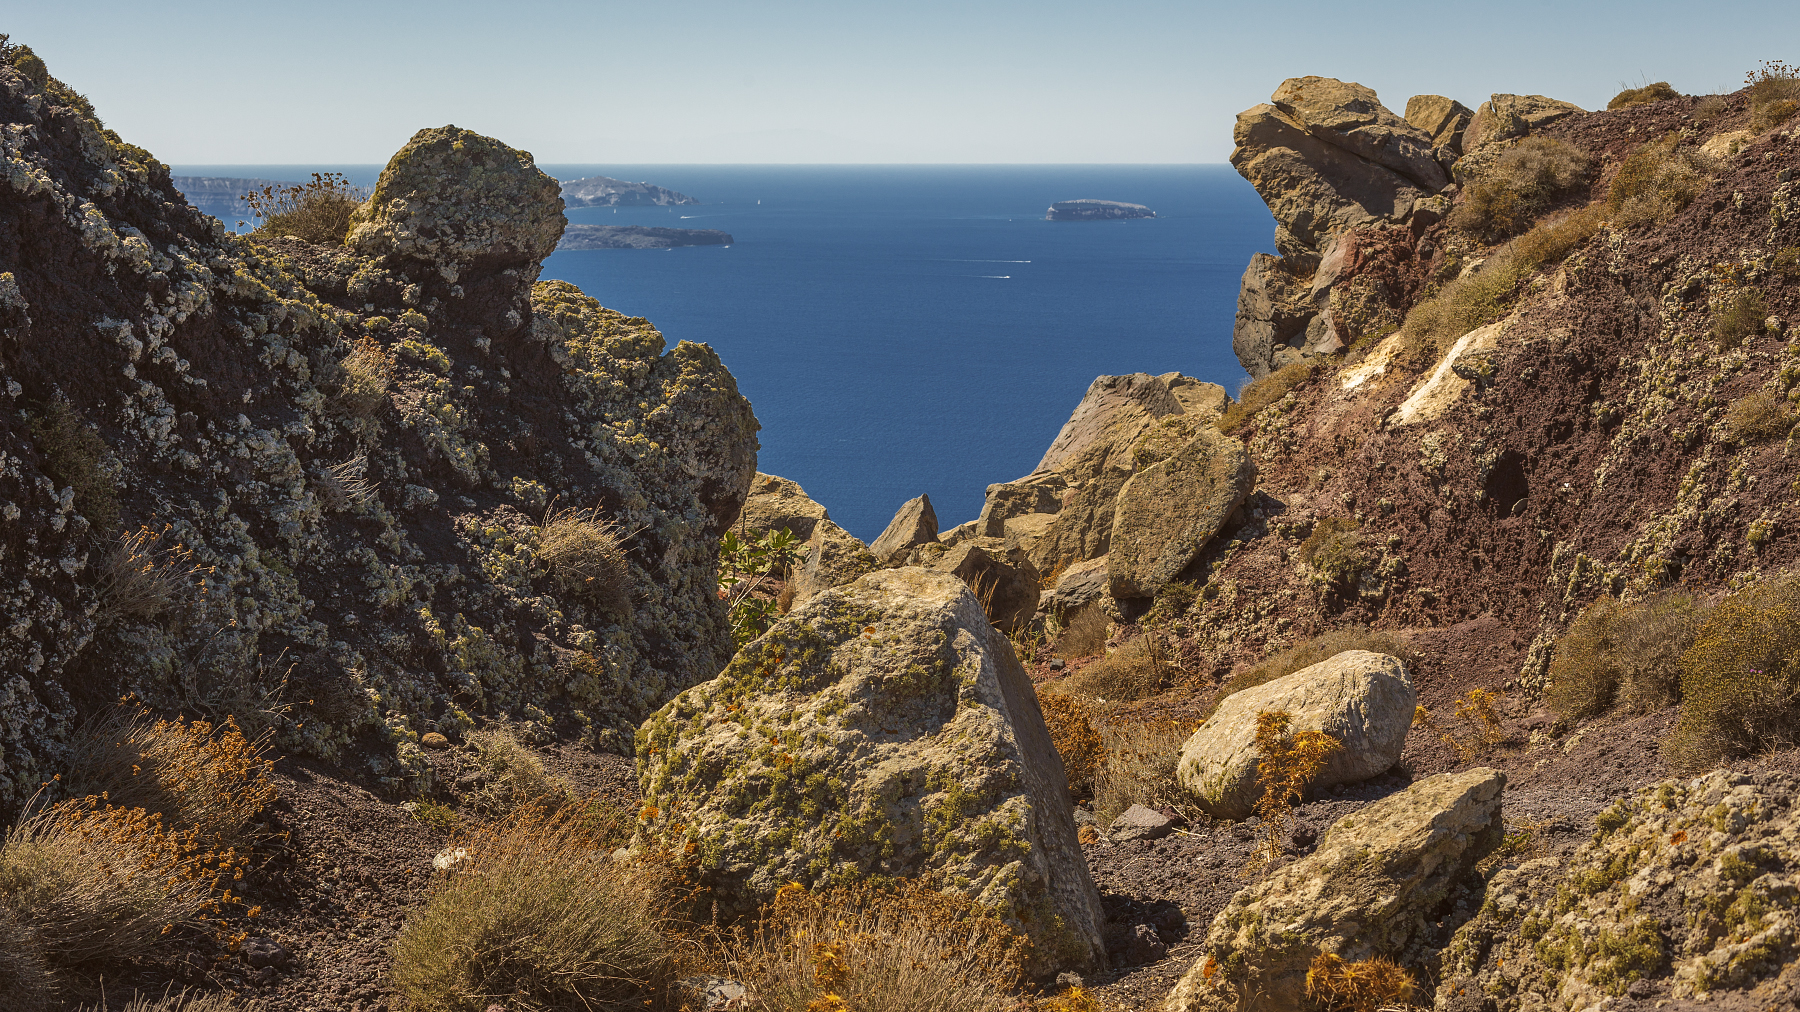 Typical landscape found in the semi-arid climate of Santorini.